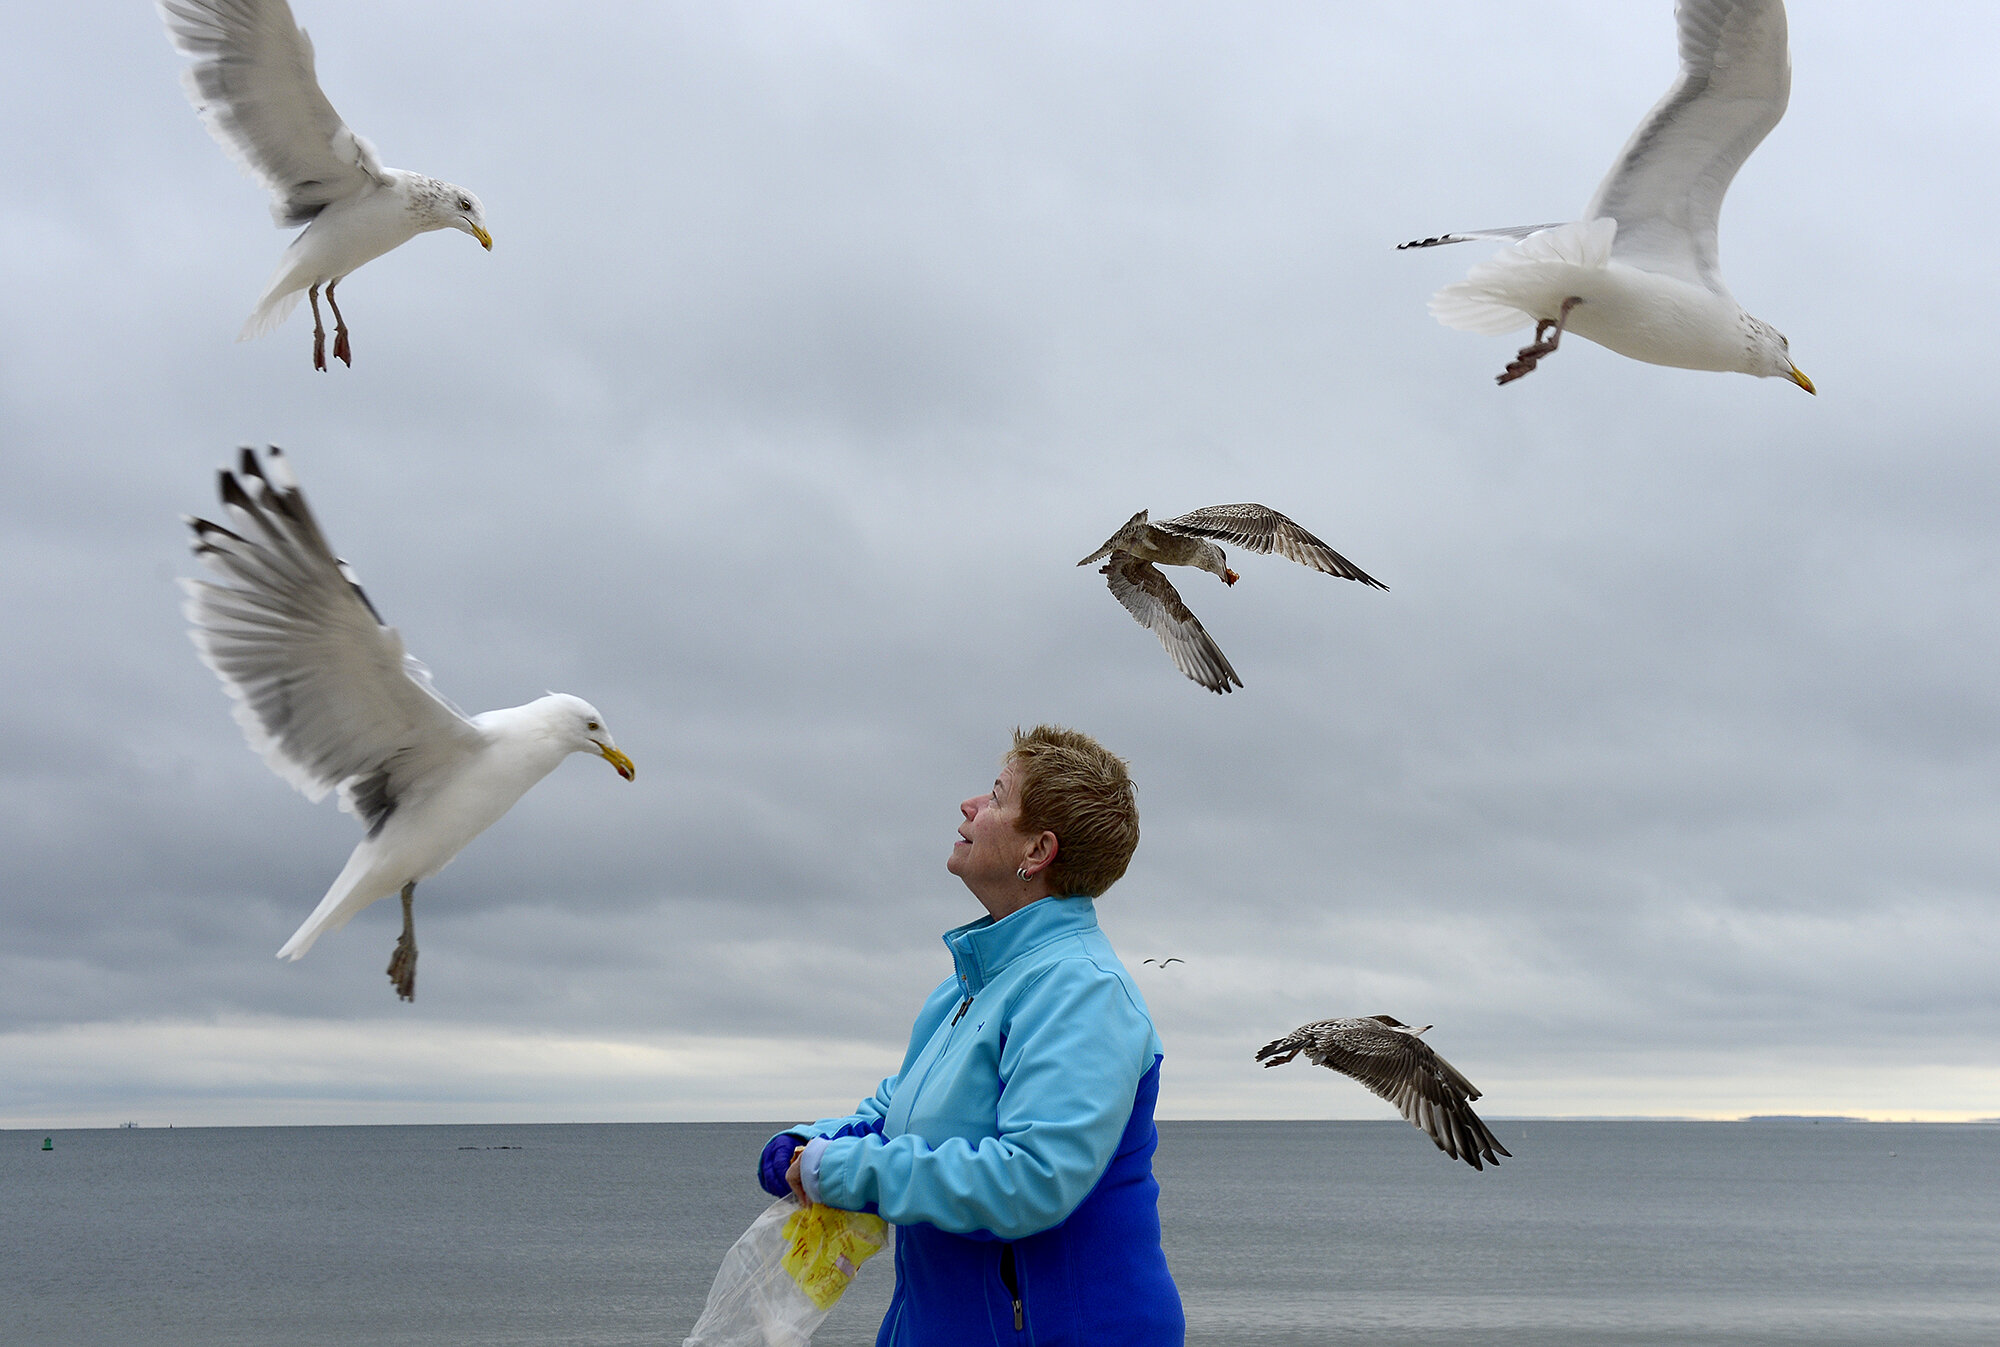 """Cindy Shea, of East Lyme, throws donuts to the seagulls at McCook Point Beach on Monday, February 18, 2019 in Niantic. Shea said she stops to feed the birds most days and usually brings donated food from Flanders Bake Shop that they were going to throw away. """"These birds eat better than I do,"""" she laughed. (The Day)"""